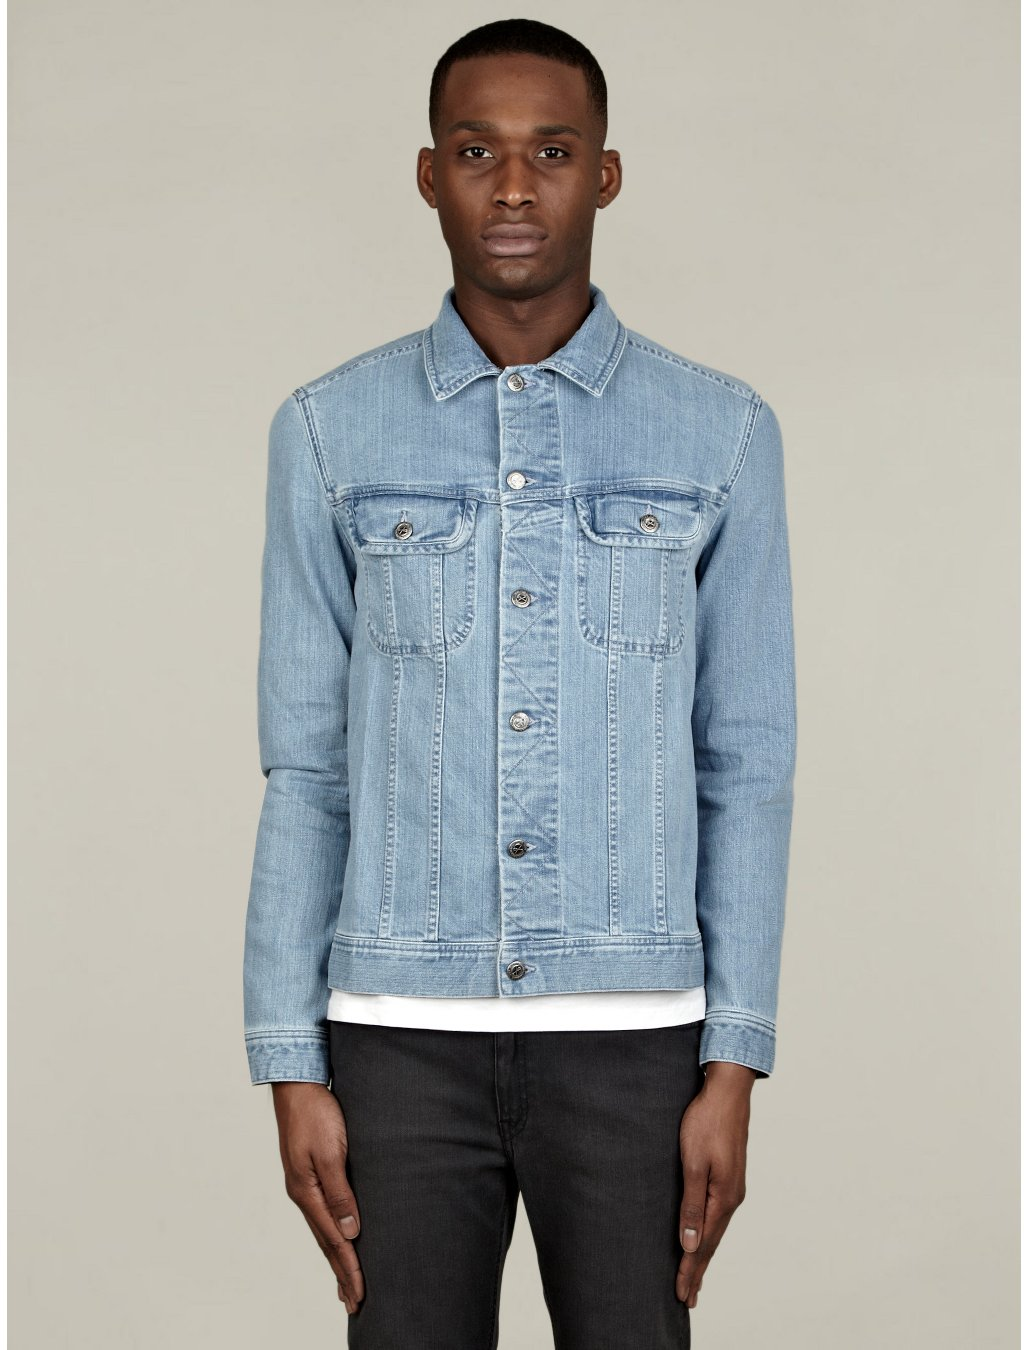 Shop for LIGHT BLUE L Men Leisure Chaqueta Washed Denim Jacket online at $ and discover fashion at hamlergoodchain.ga